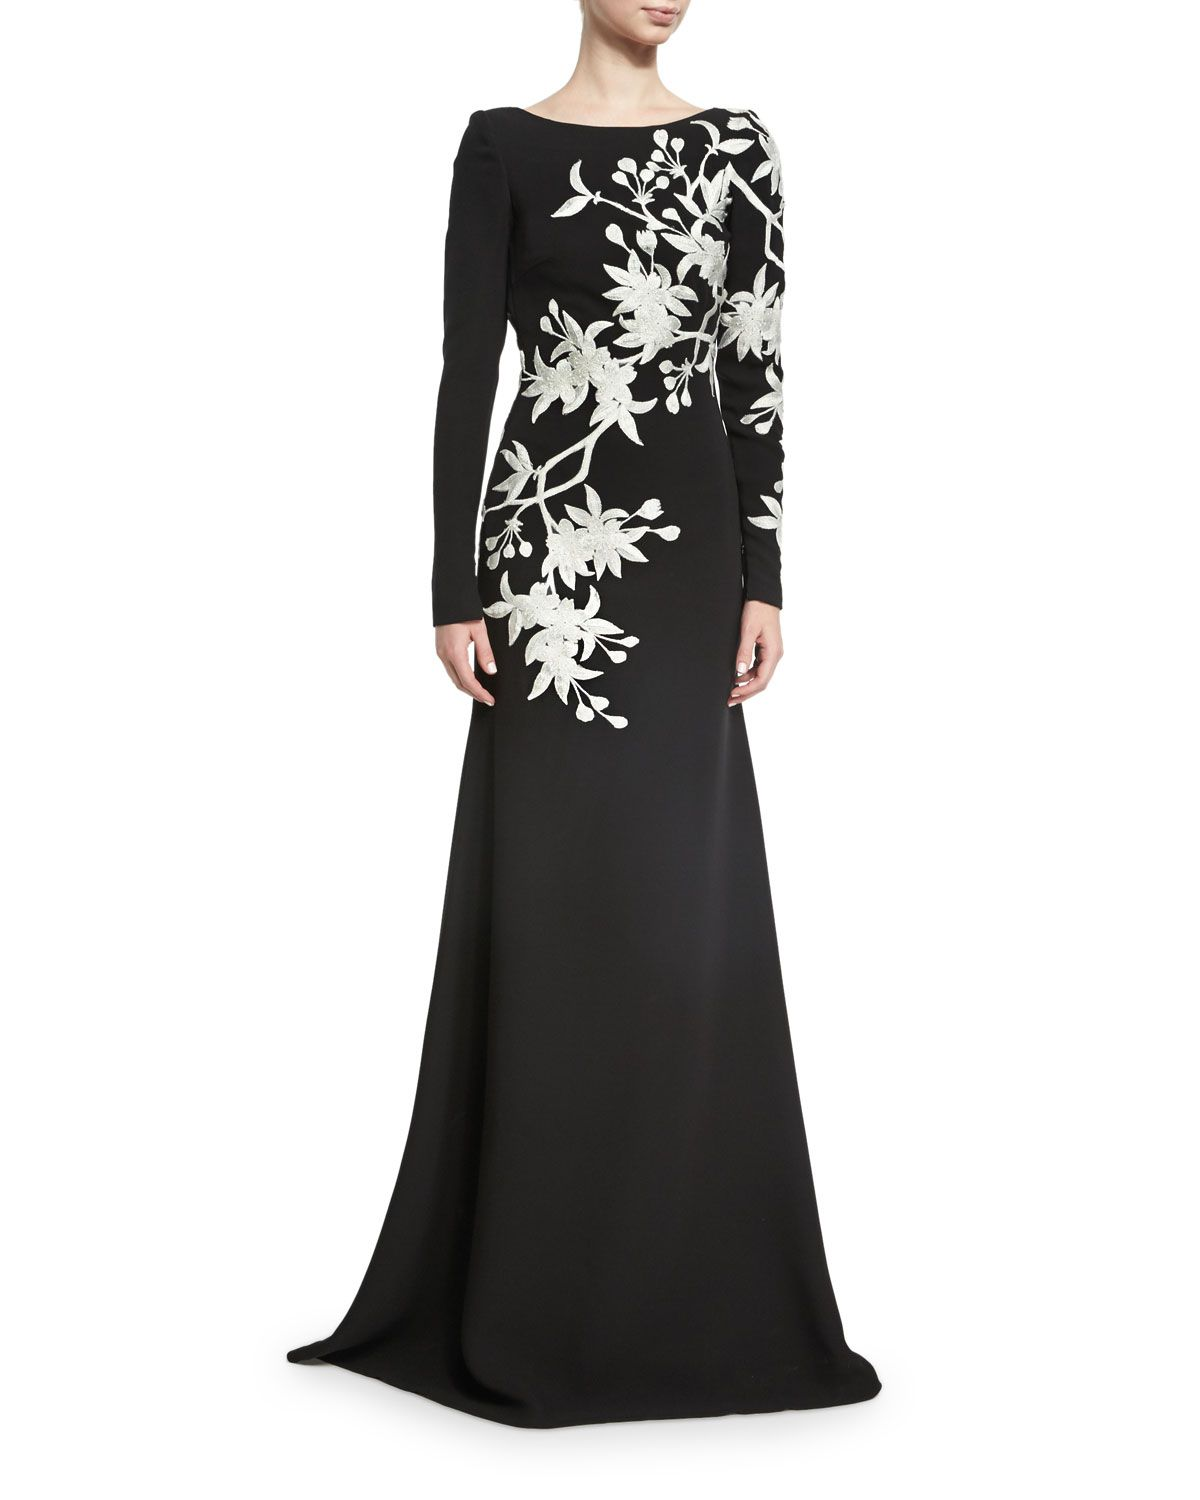 Neiman marcus dresses for weddings  FloralEmbroidered LongSleeve Gown BlackWhite  Long sleeve gown